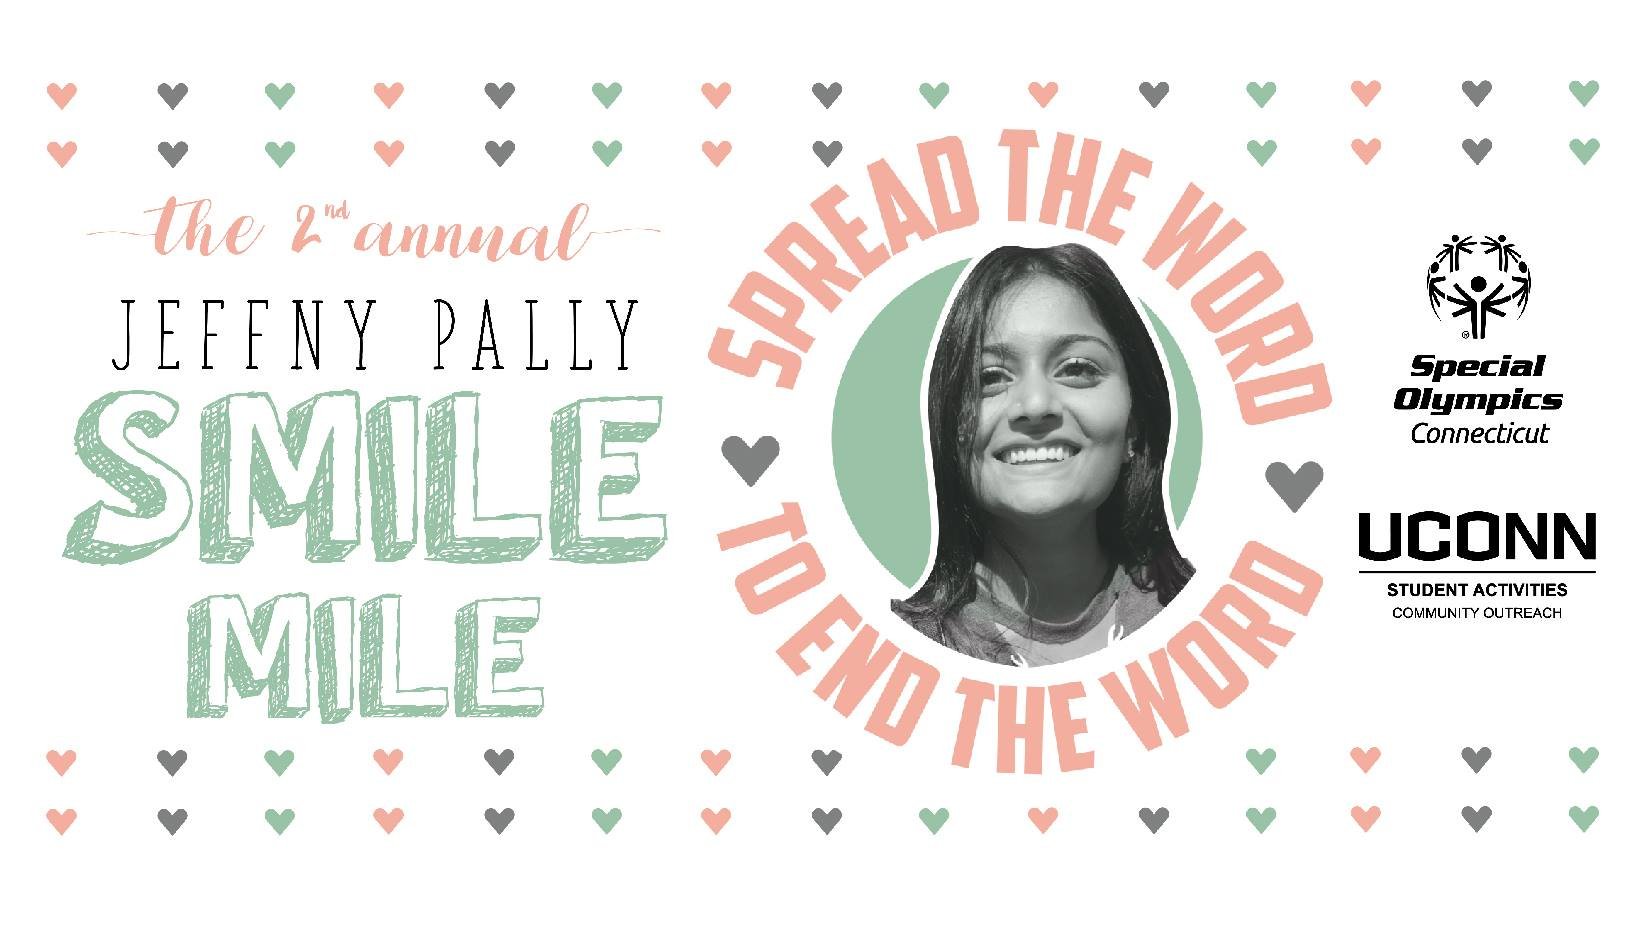 The Jeffny Pally Smile Mile was established in 2017 as a one-mile walk/wheel to support the R-Word Campaign. (via UConn Community Outreach Facebook page for Second Annual Jeffny Pally Smile Mile event)